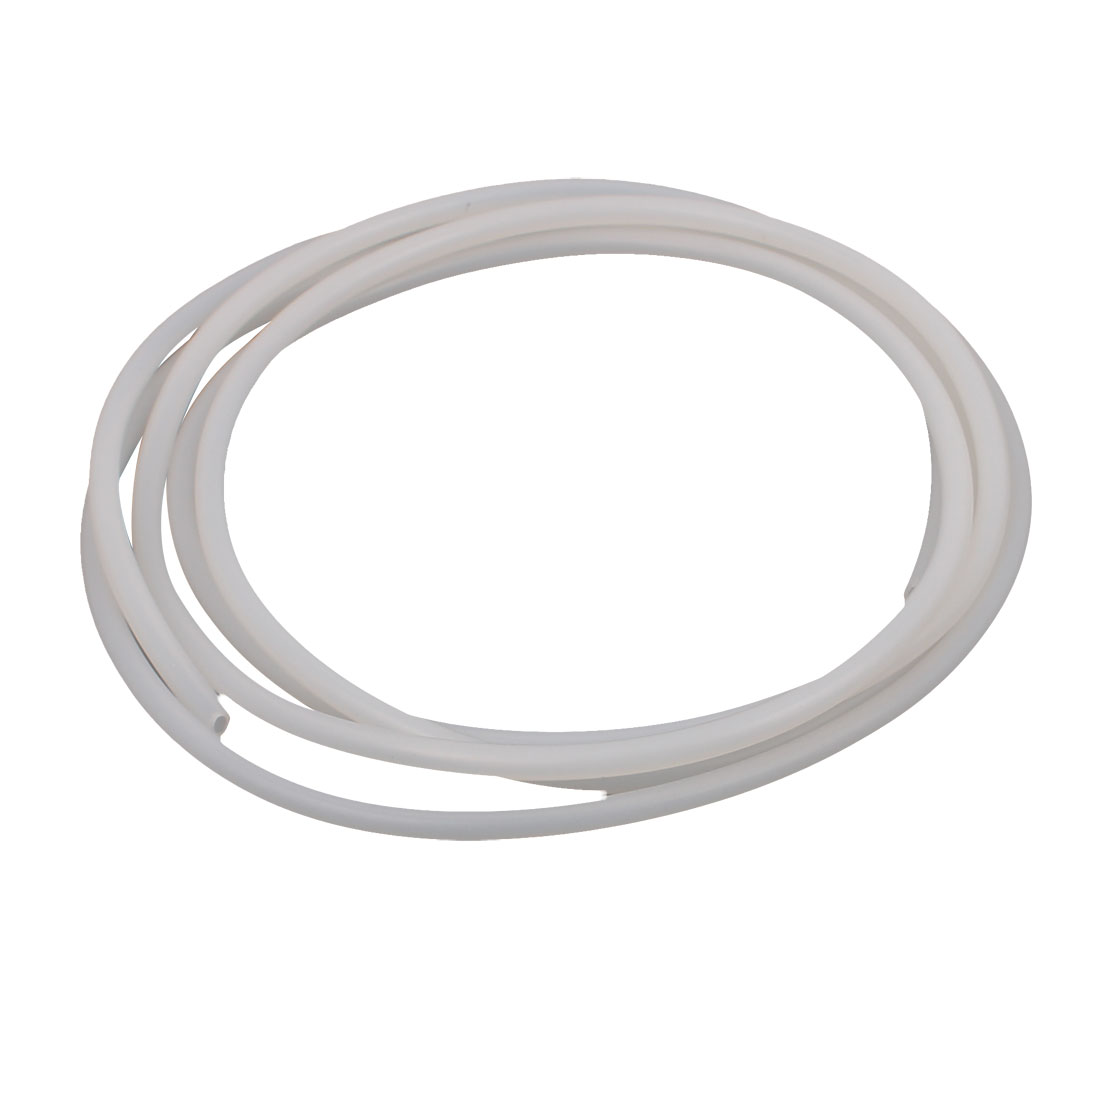 2.5mm x 5mm Beige Silicone Tube Water Air Pump Hose Pipe 2M Length